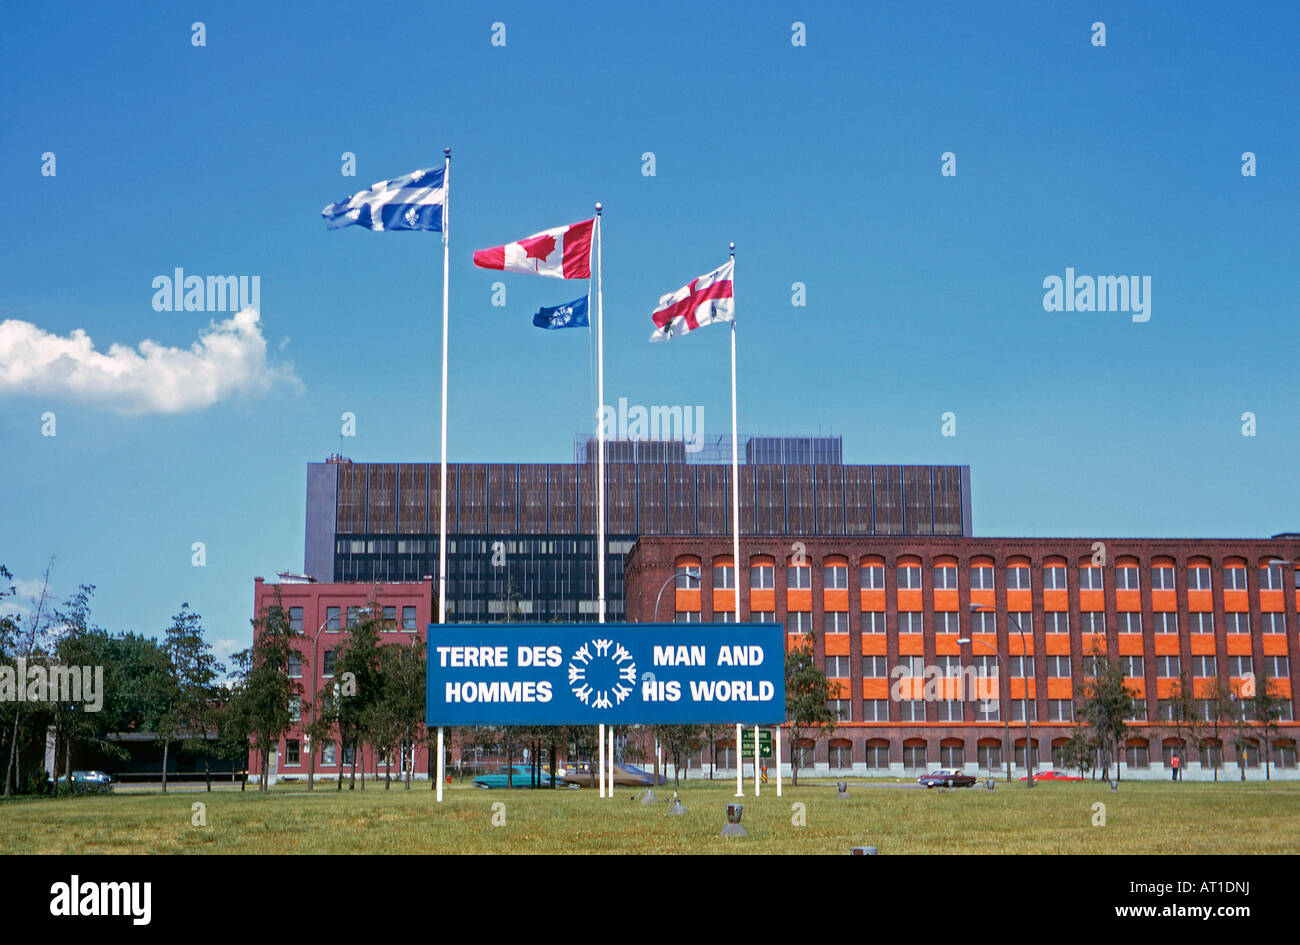 Sign for the Montreal Expo exhibition, Man and his World, 1973 - Stock Image